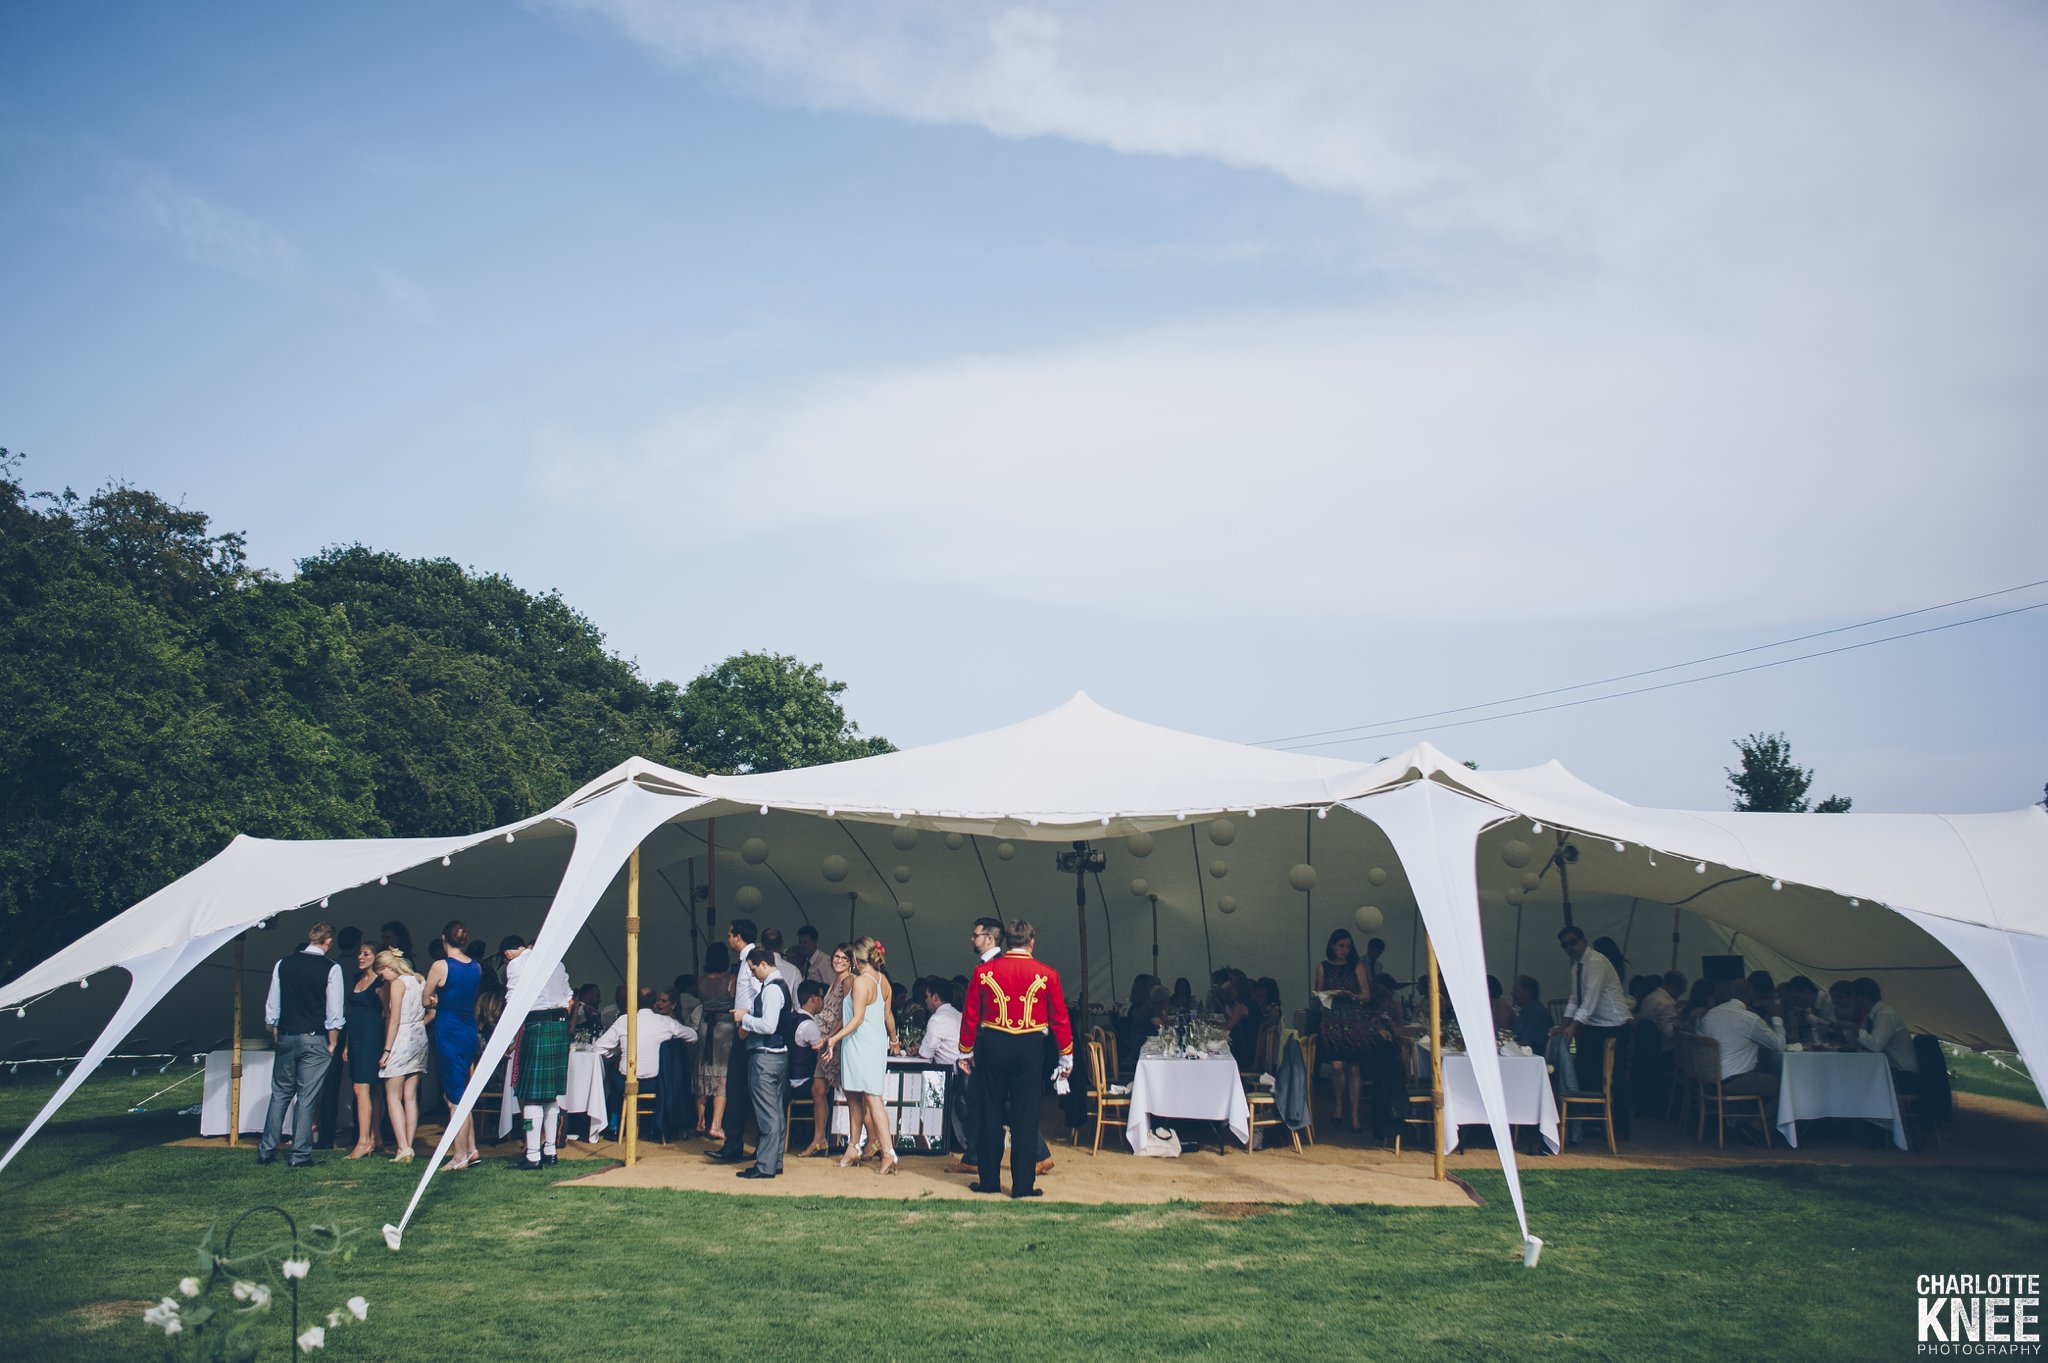 4Elements Tents Stretch Tent Kent Wedding Charlotte Knee Photography_0007.jpg & Charlotte Knee Photography » Kent lifestyle photographer with a ...